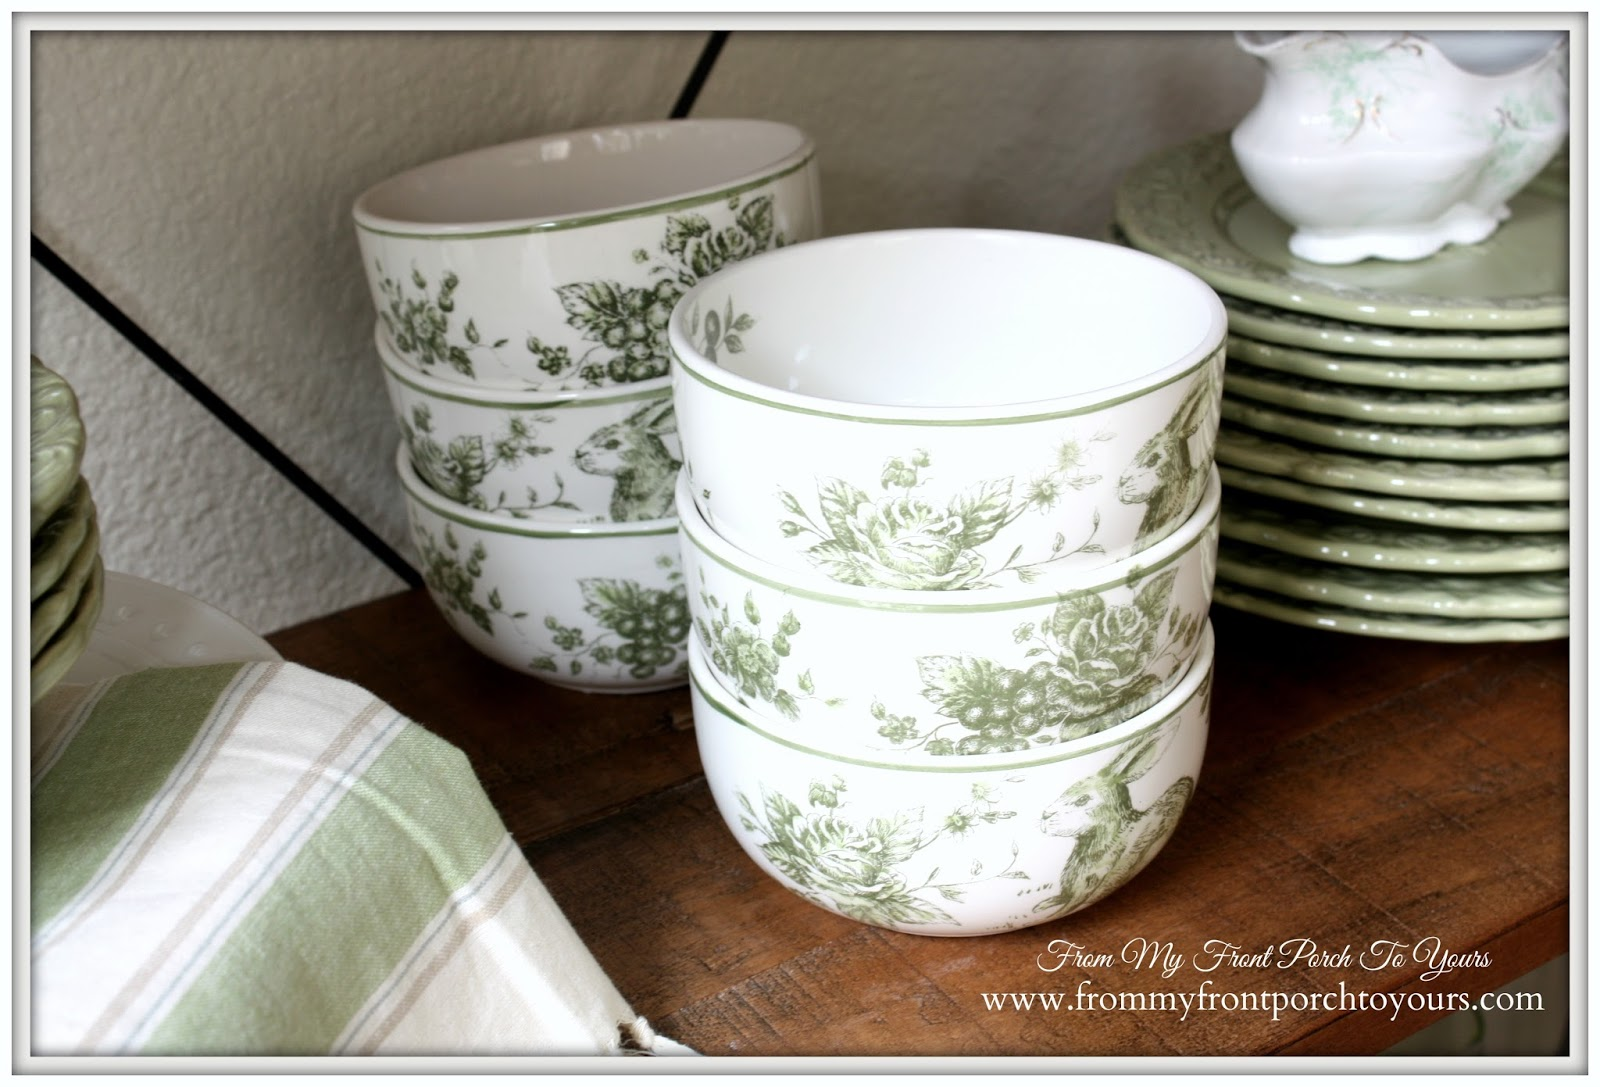 French Farmhouse Spring Breakfast Nook- From My Front Porch To Yours-Maxcerna Green & White Toile Bowls